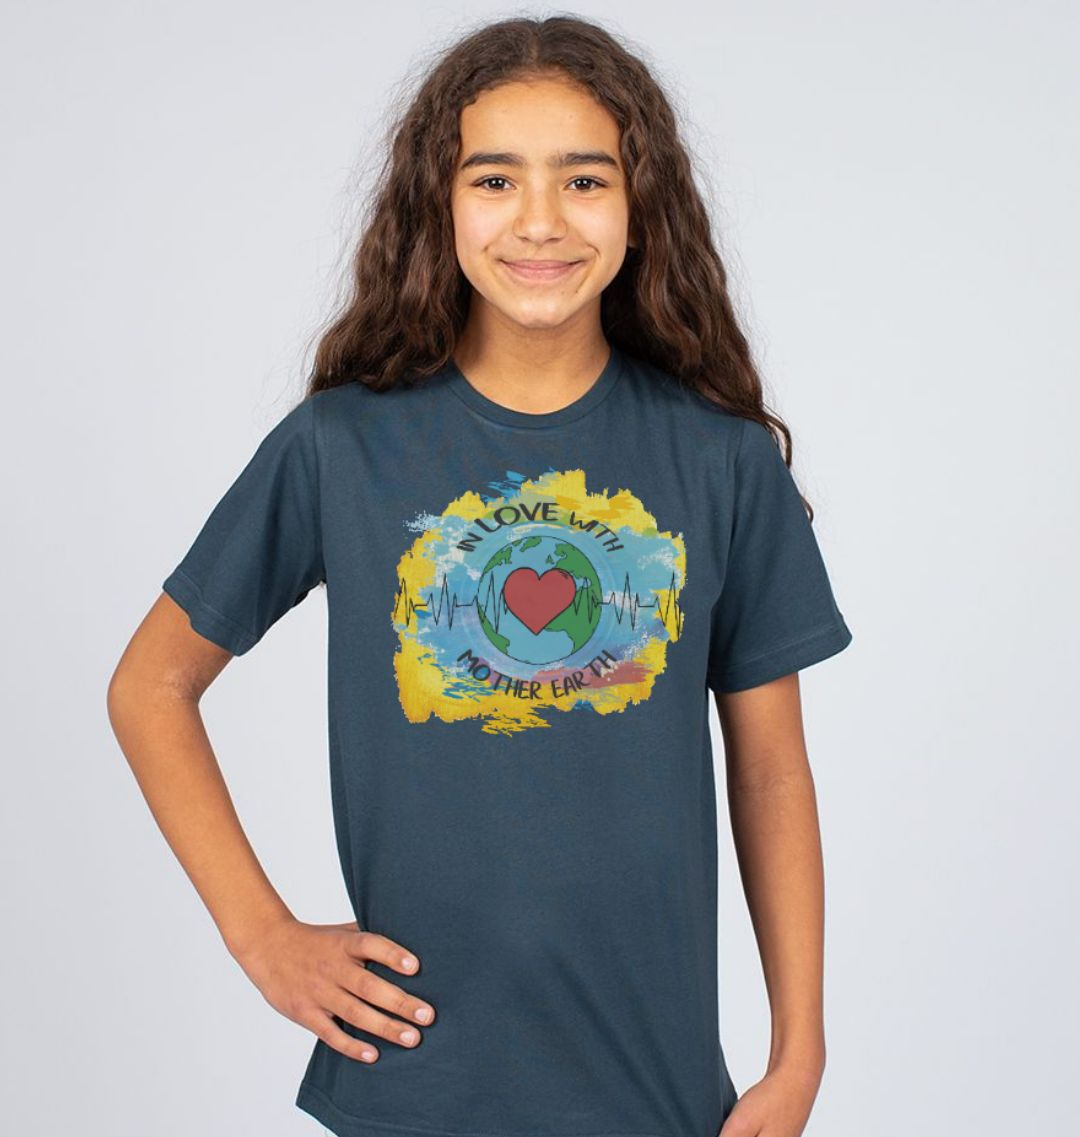 Children's Climate T Shirt 'In Love With Mother Earth' Soft Organic Cotton denim blue